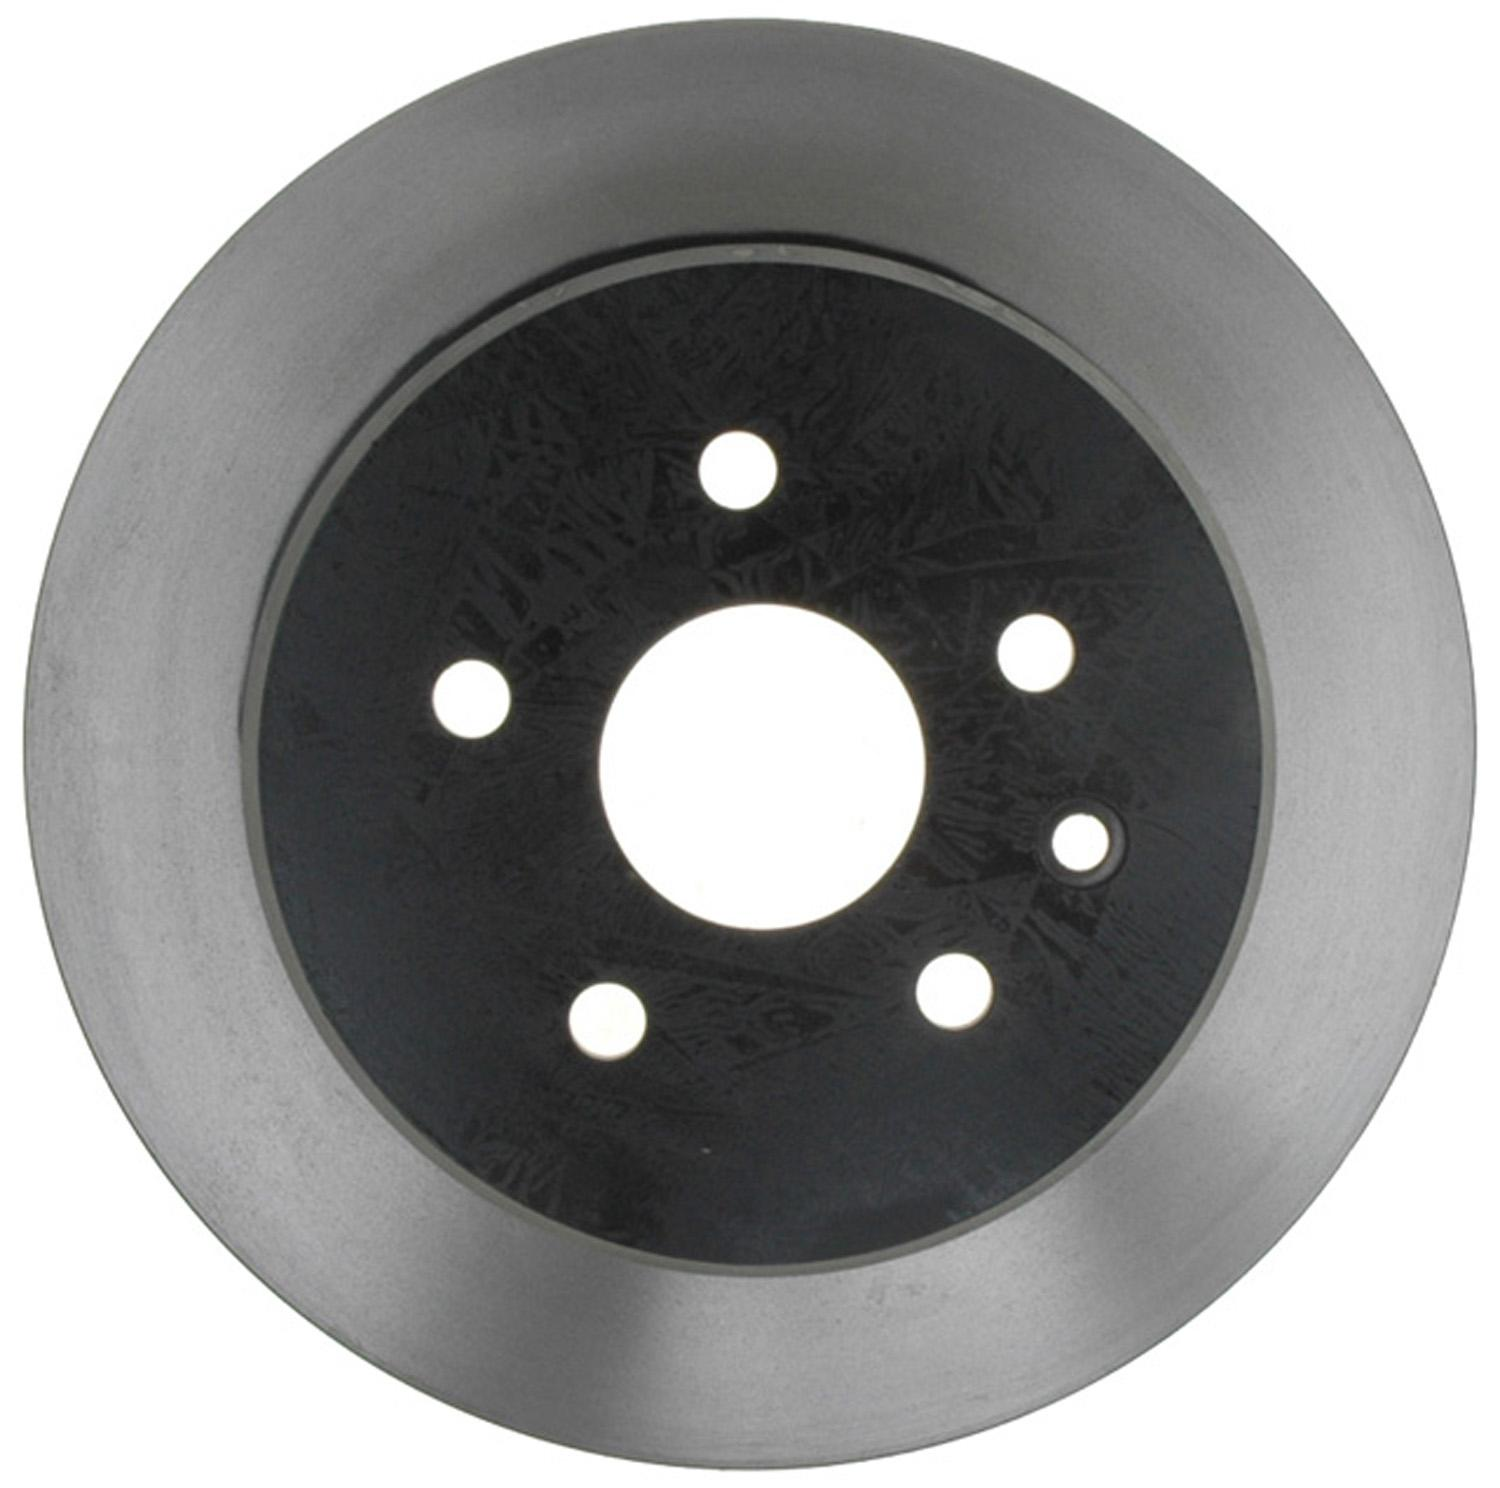 ACDELCO PROFESSIONAL BRAKES - Disc Brake Rotor (Rear) - ADU 18A918